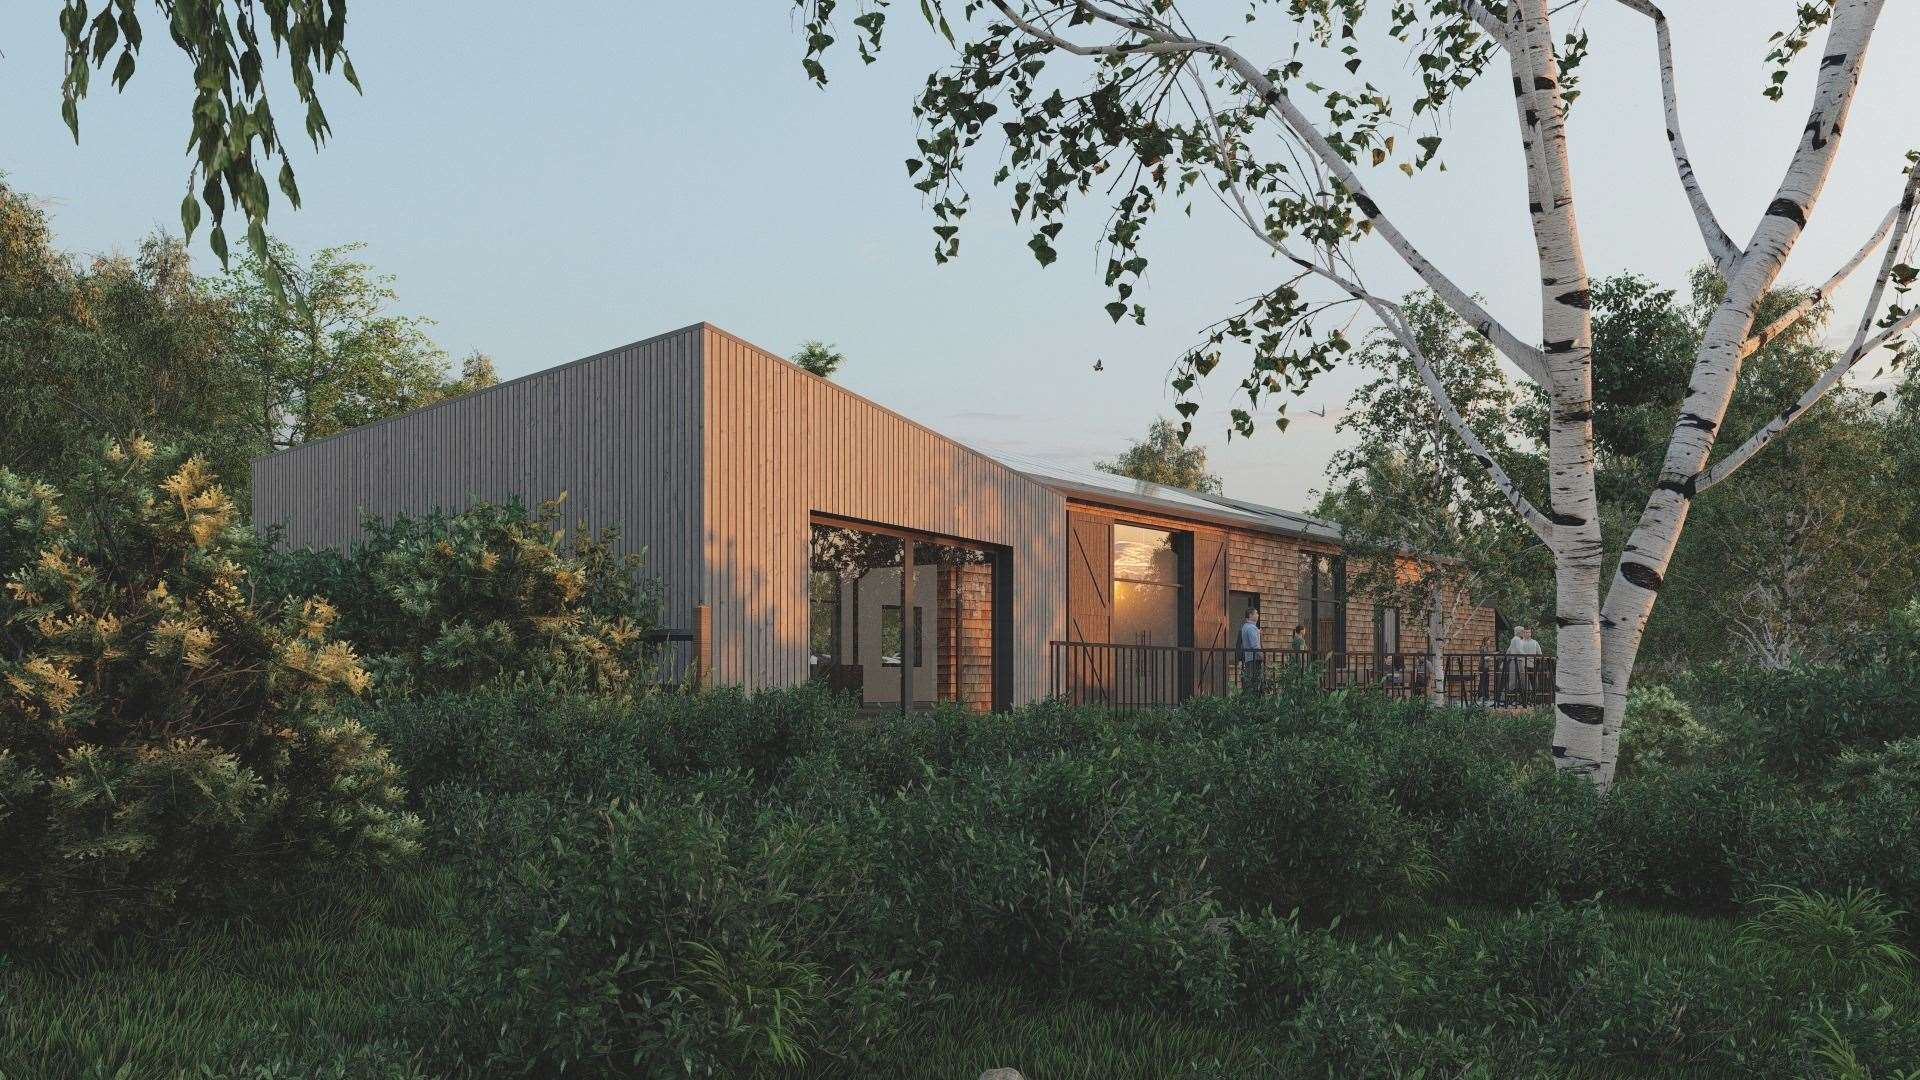 There are plans to improve the Sevenoaks Kent Wildlife Trust centre